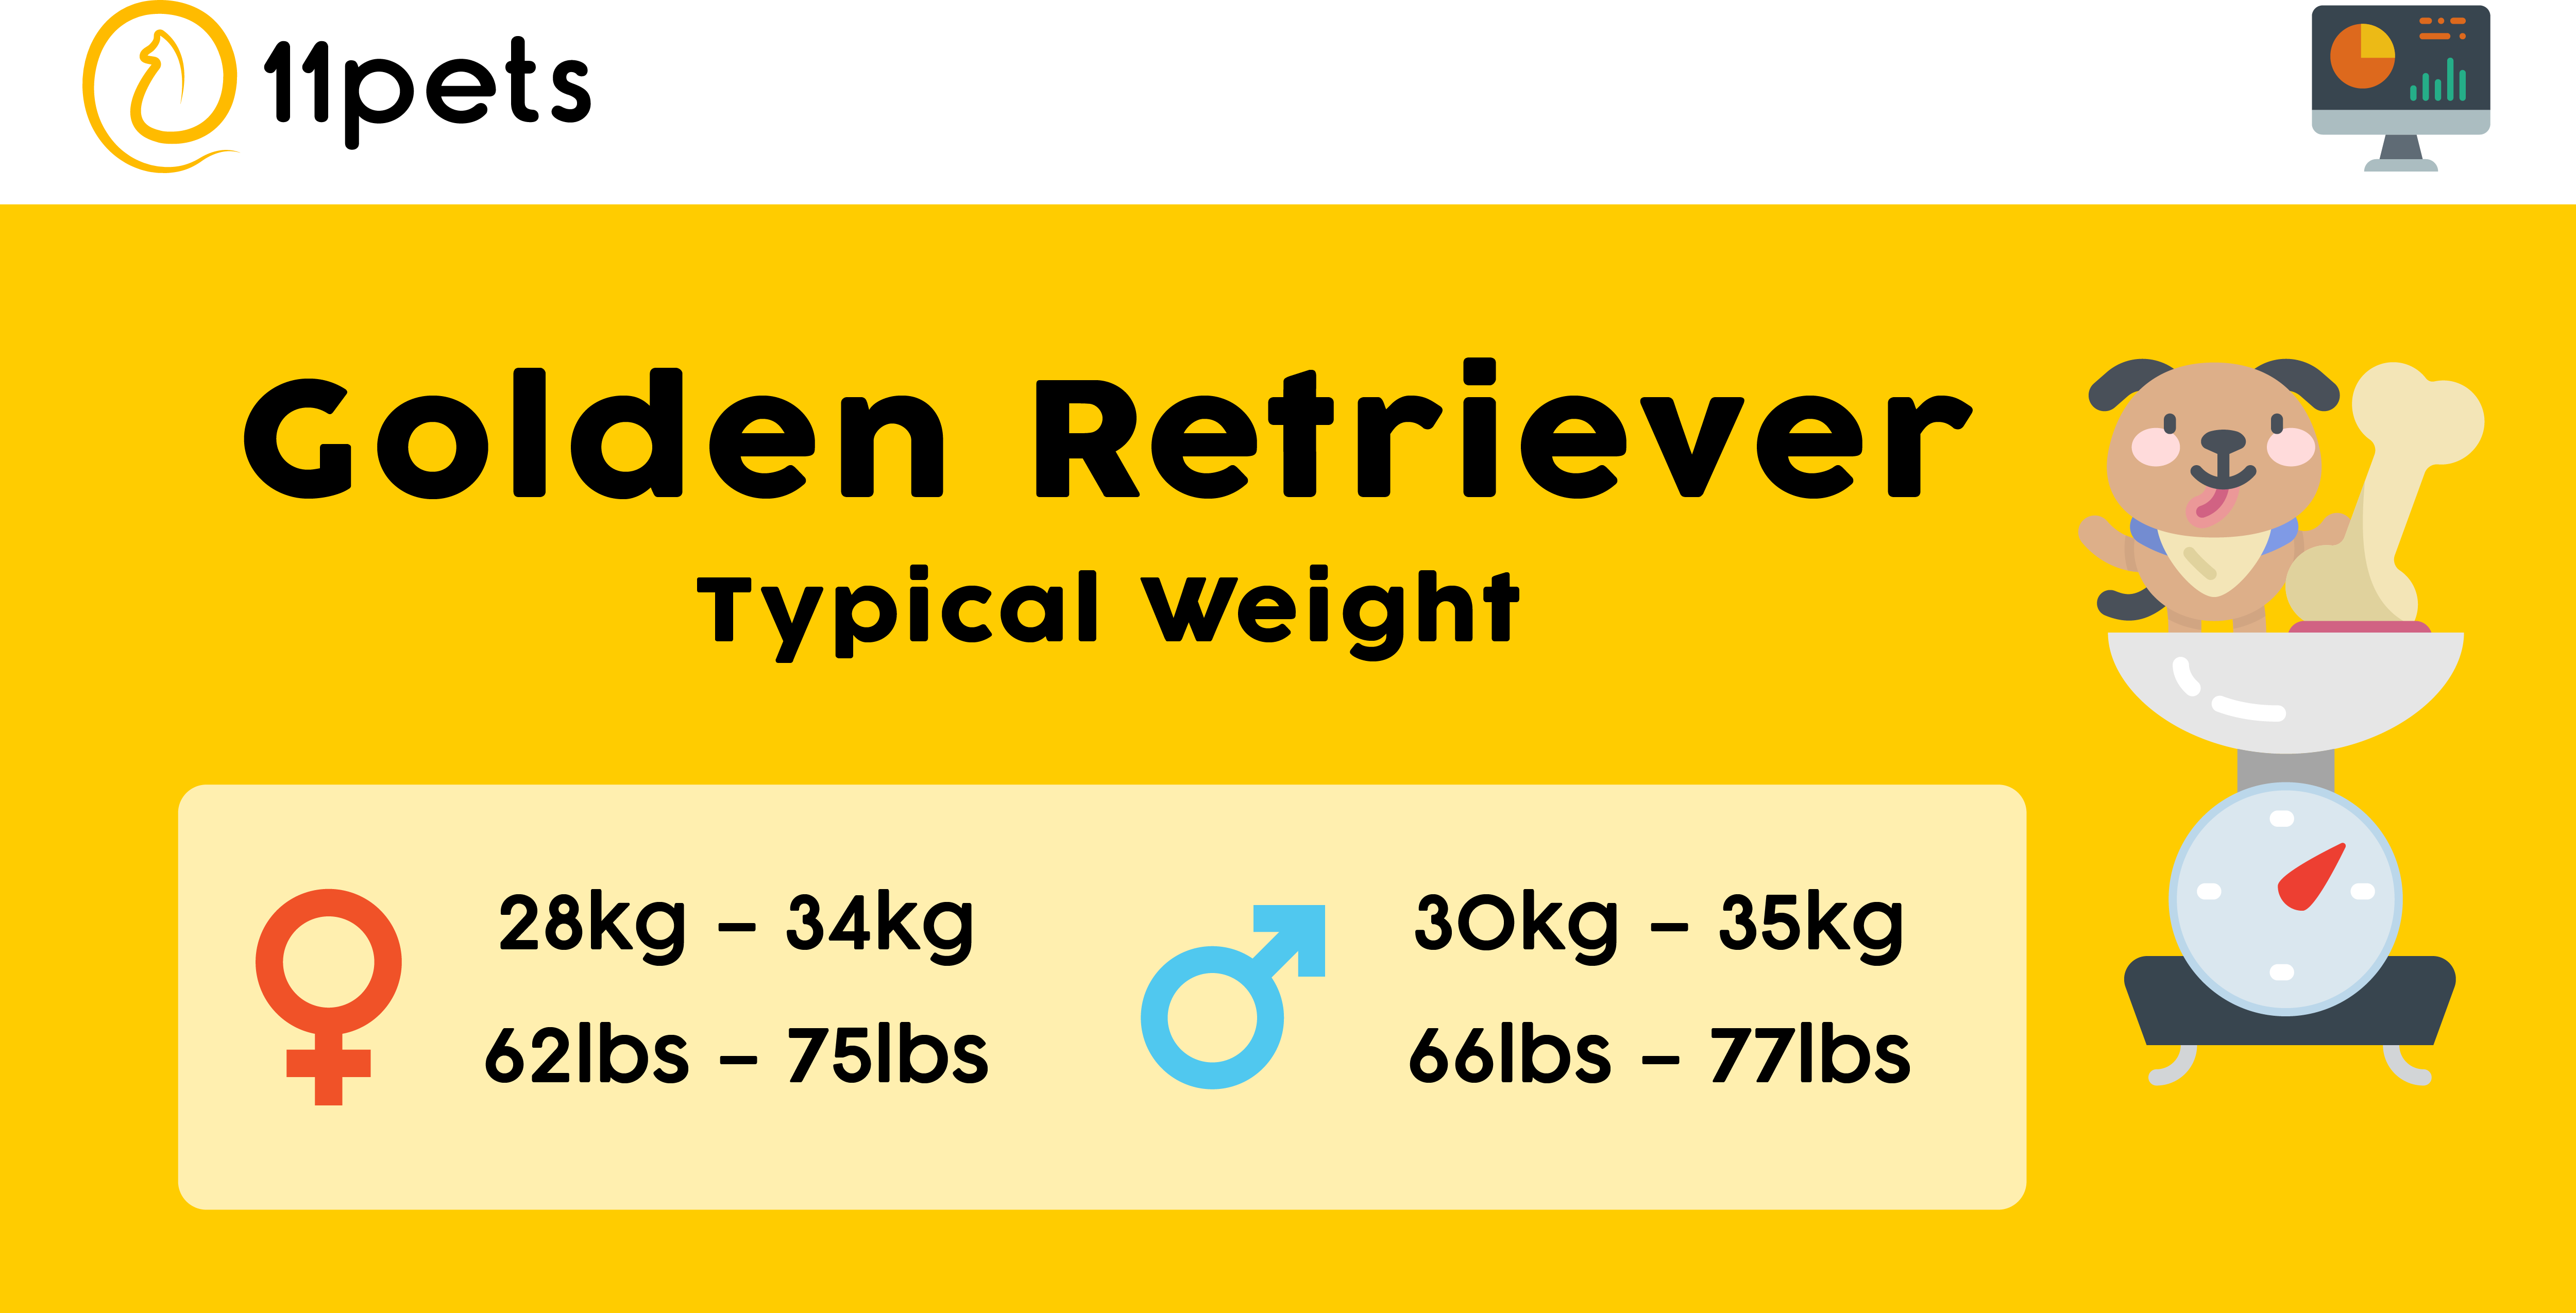 Typical weight for Golden Retriever dogs